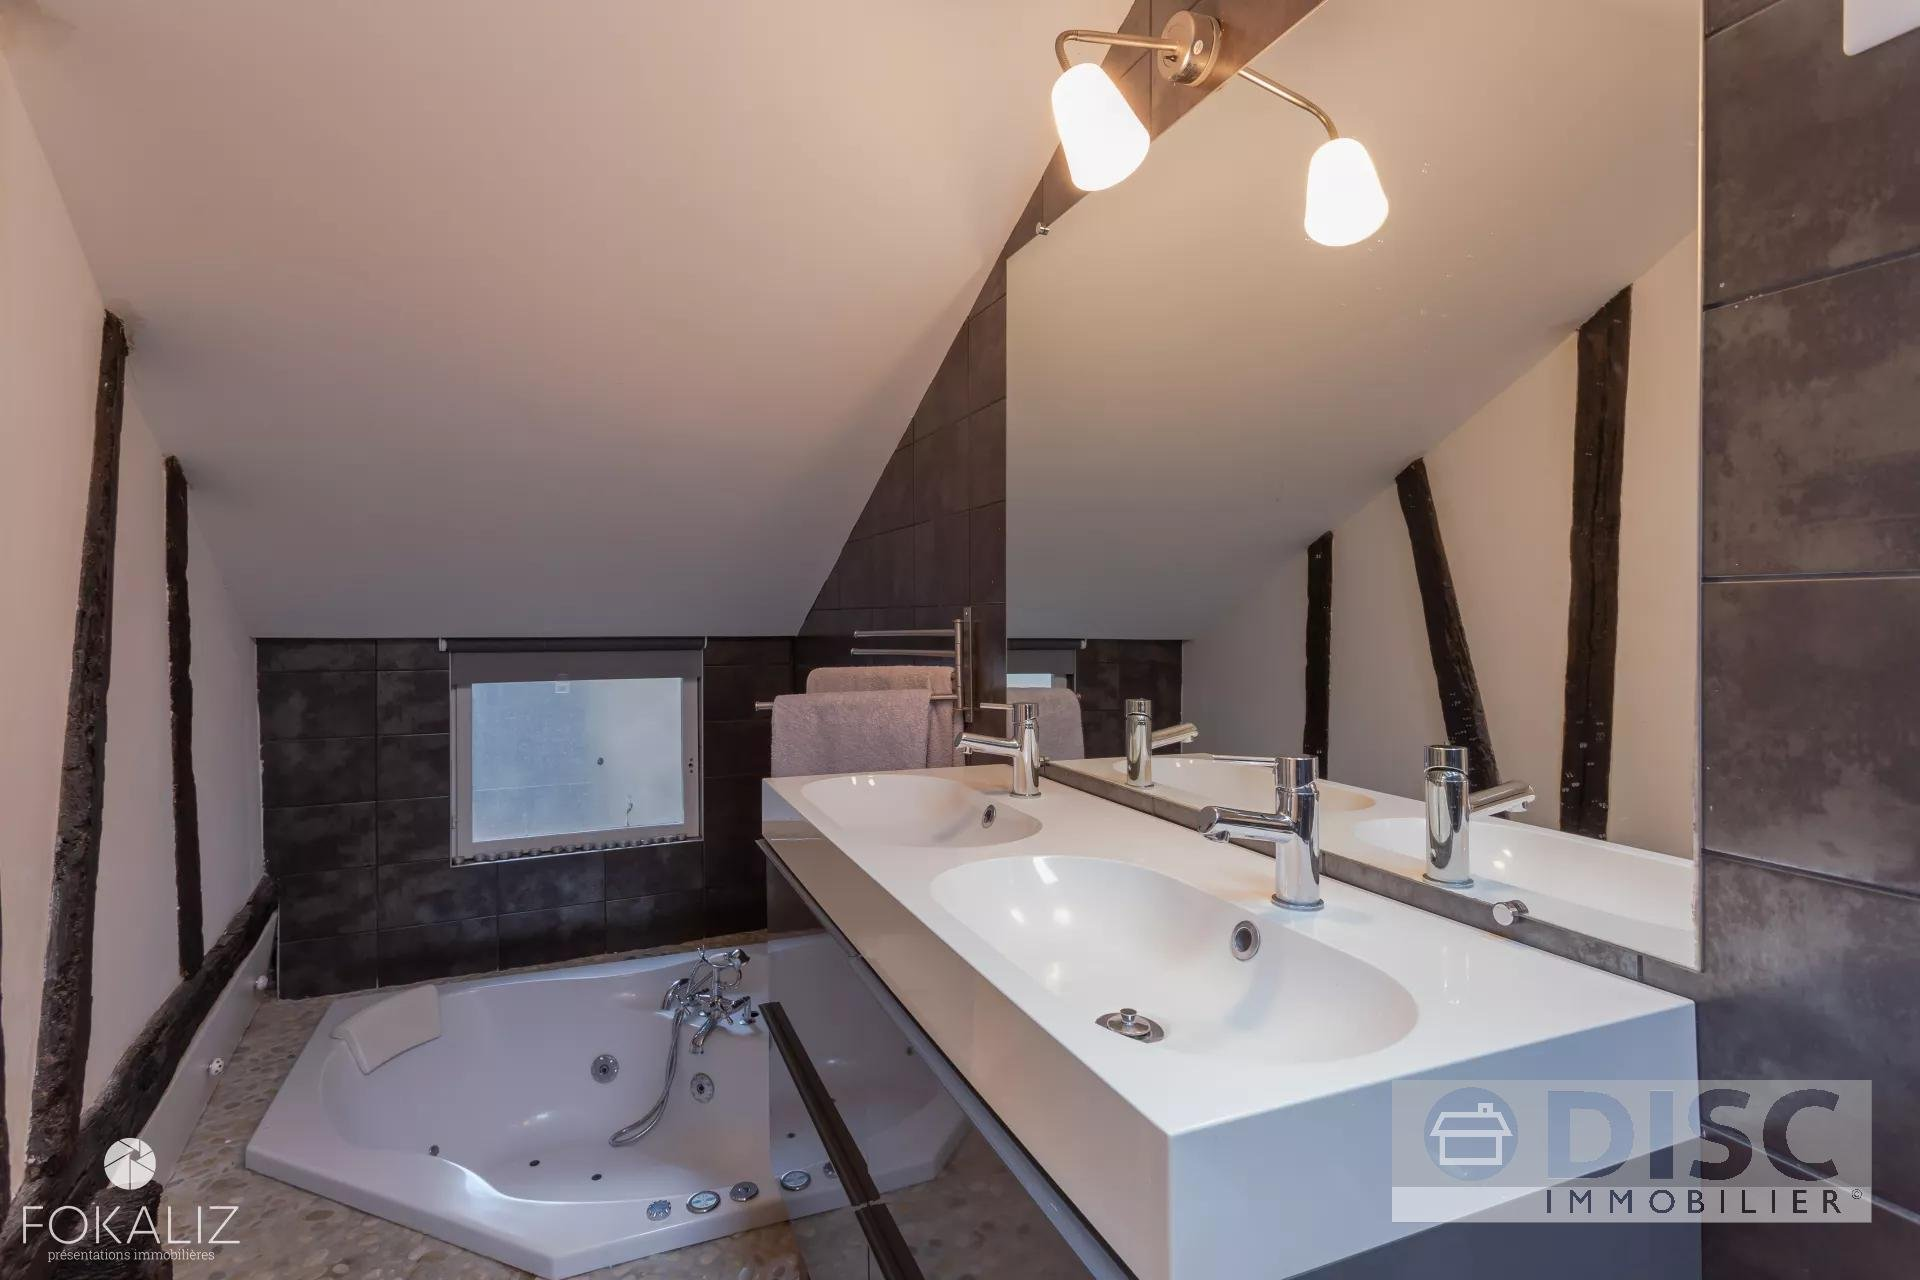 65 / 5000 Résultats de traduction Magnificent luxury apartment in the heart of the medieval city.